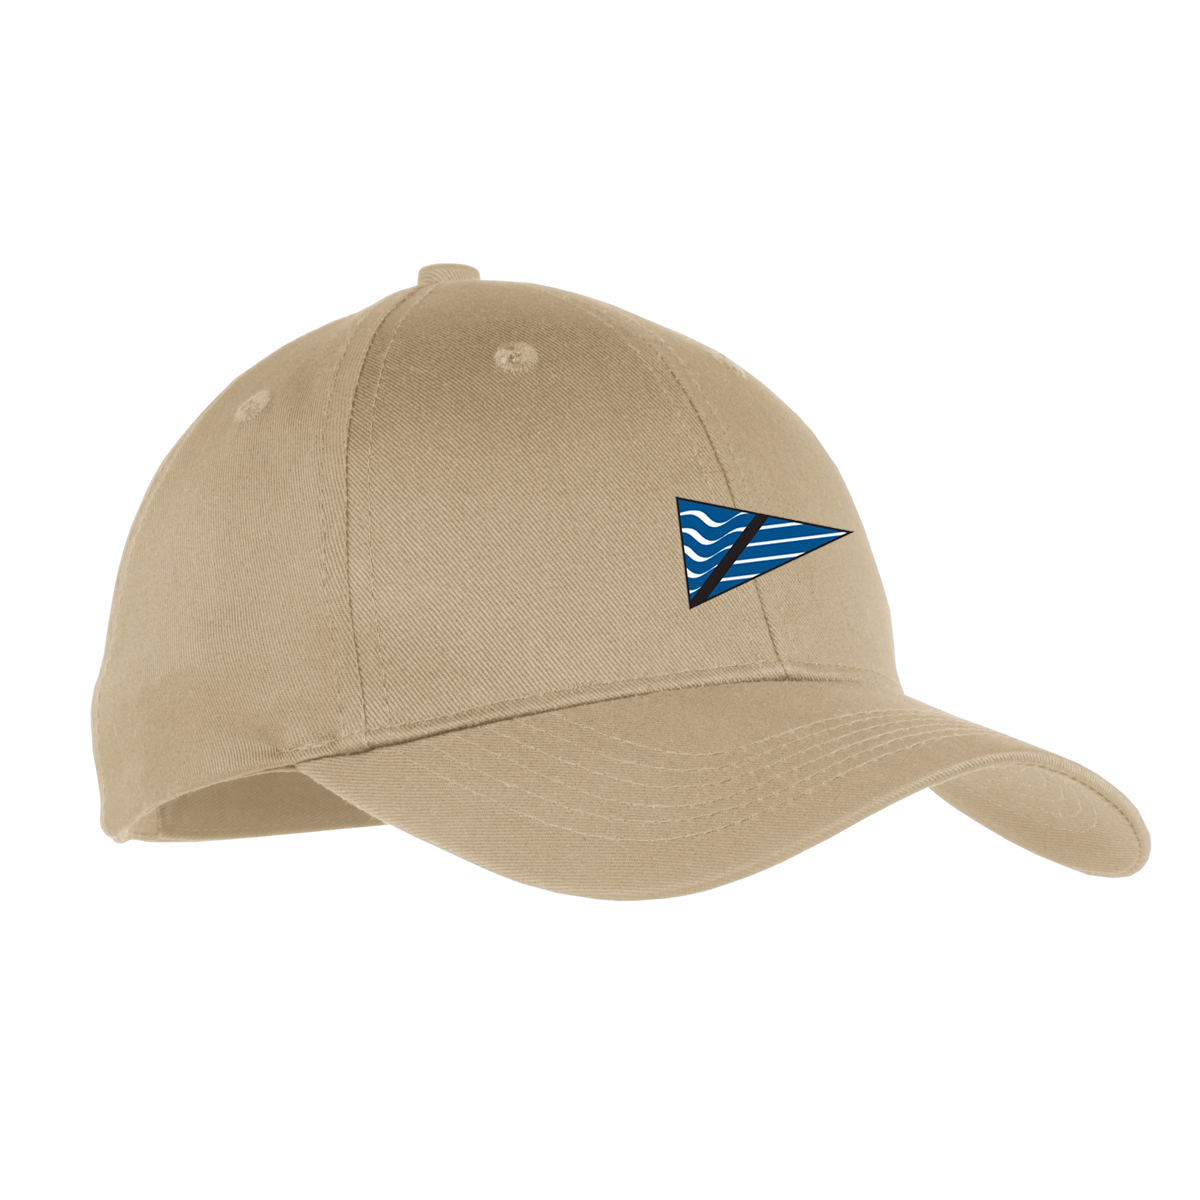 Breakwater Yacht Club- Youth Baseball Hat